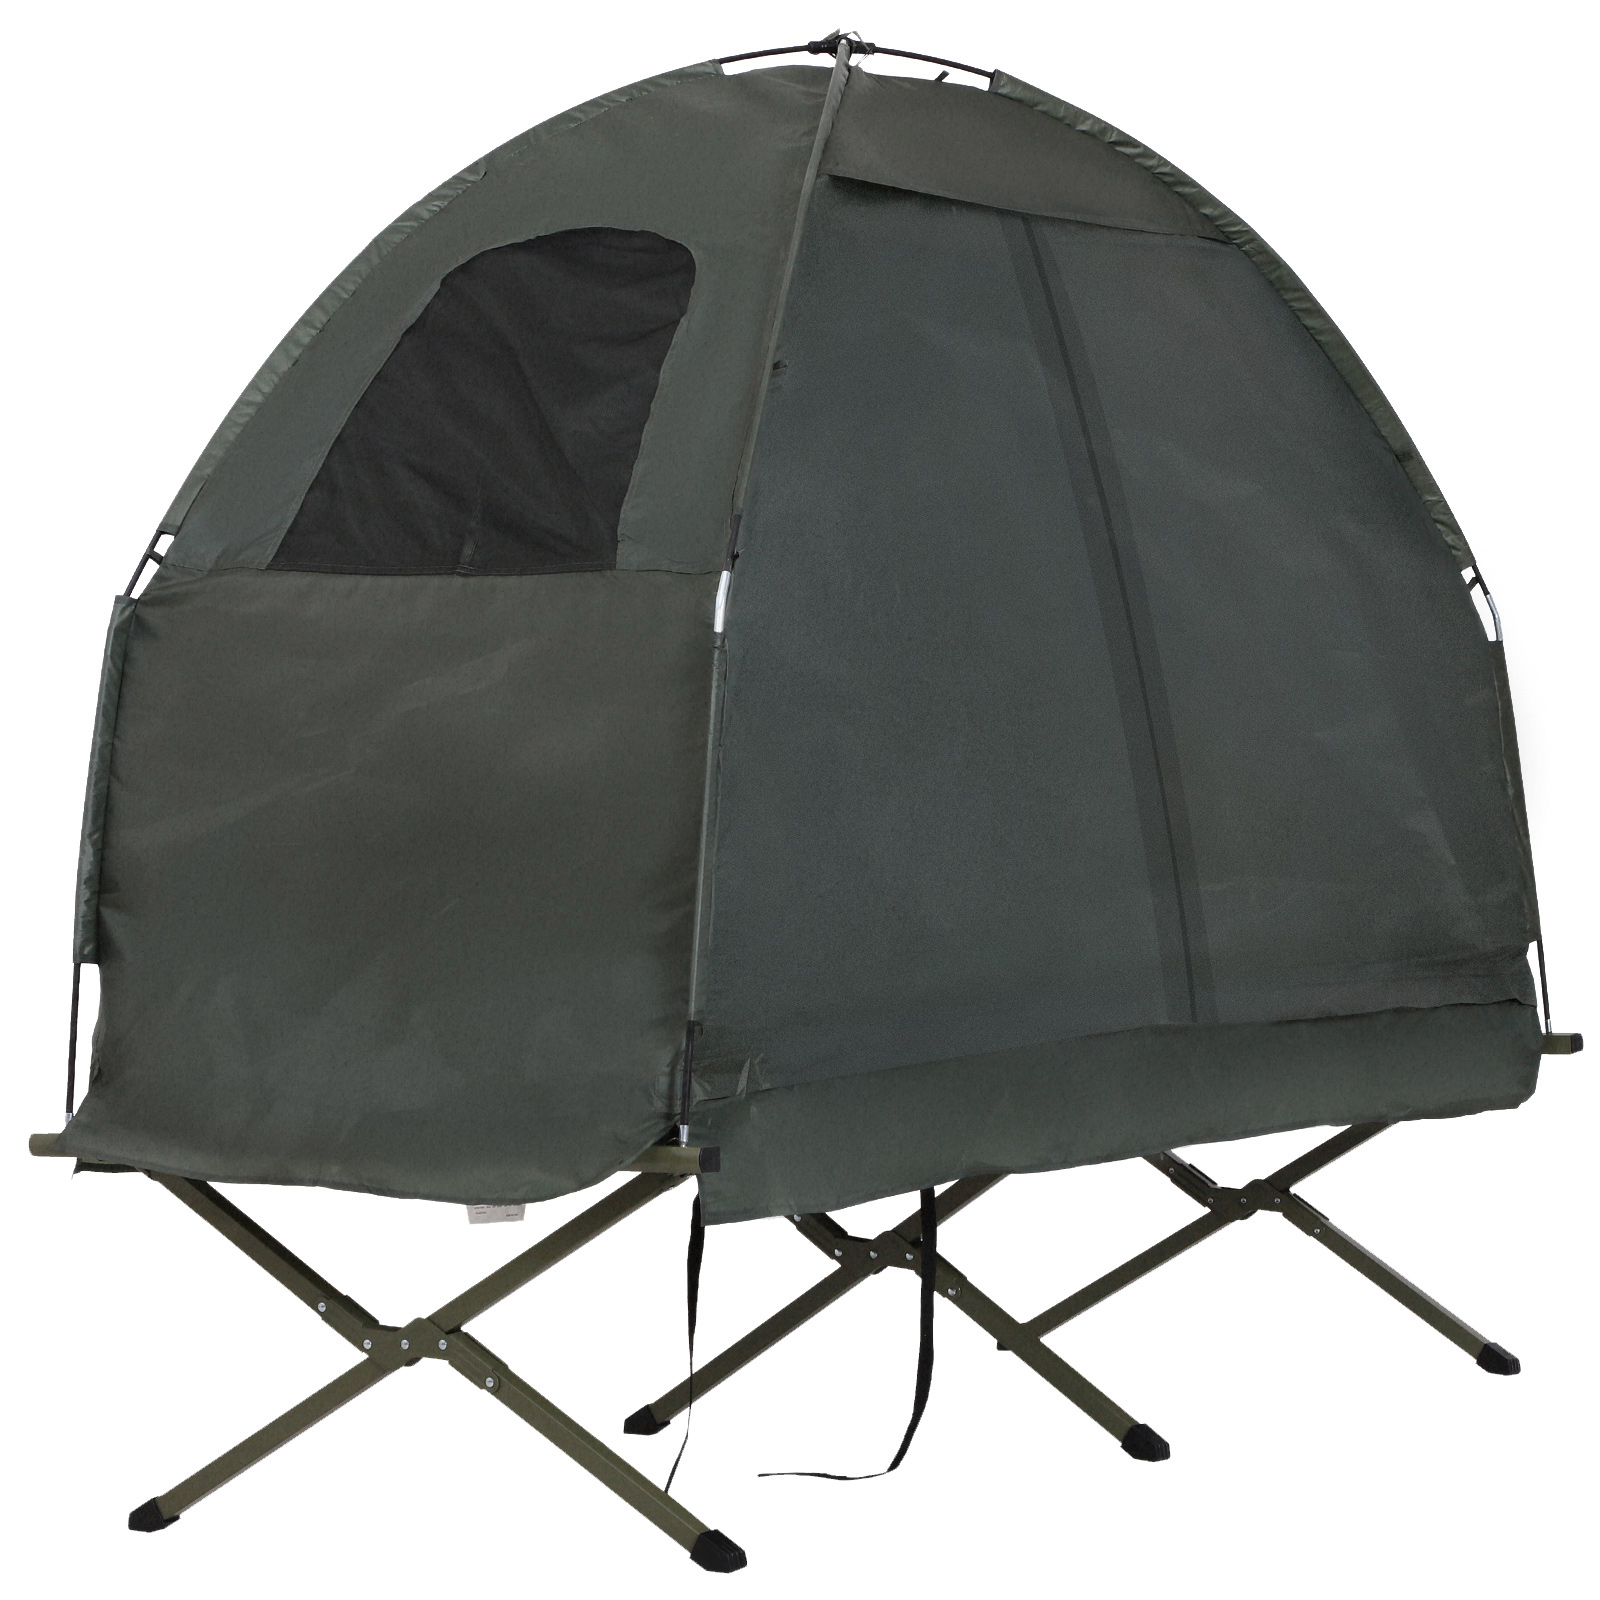 Outsunny 1 Person Compact Pop Up Portable Folding Outdoor ...